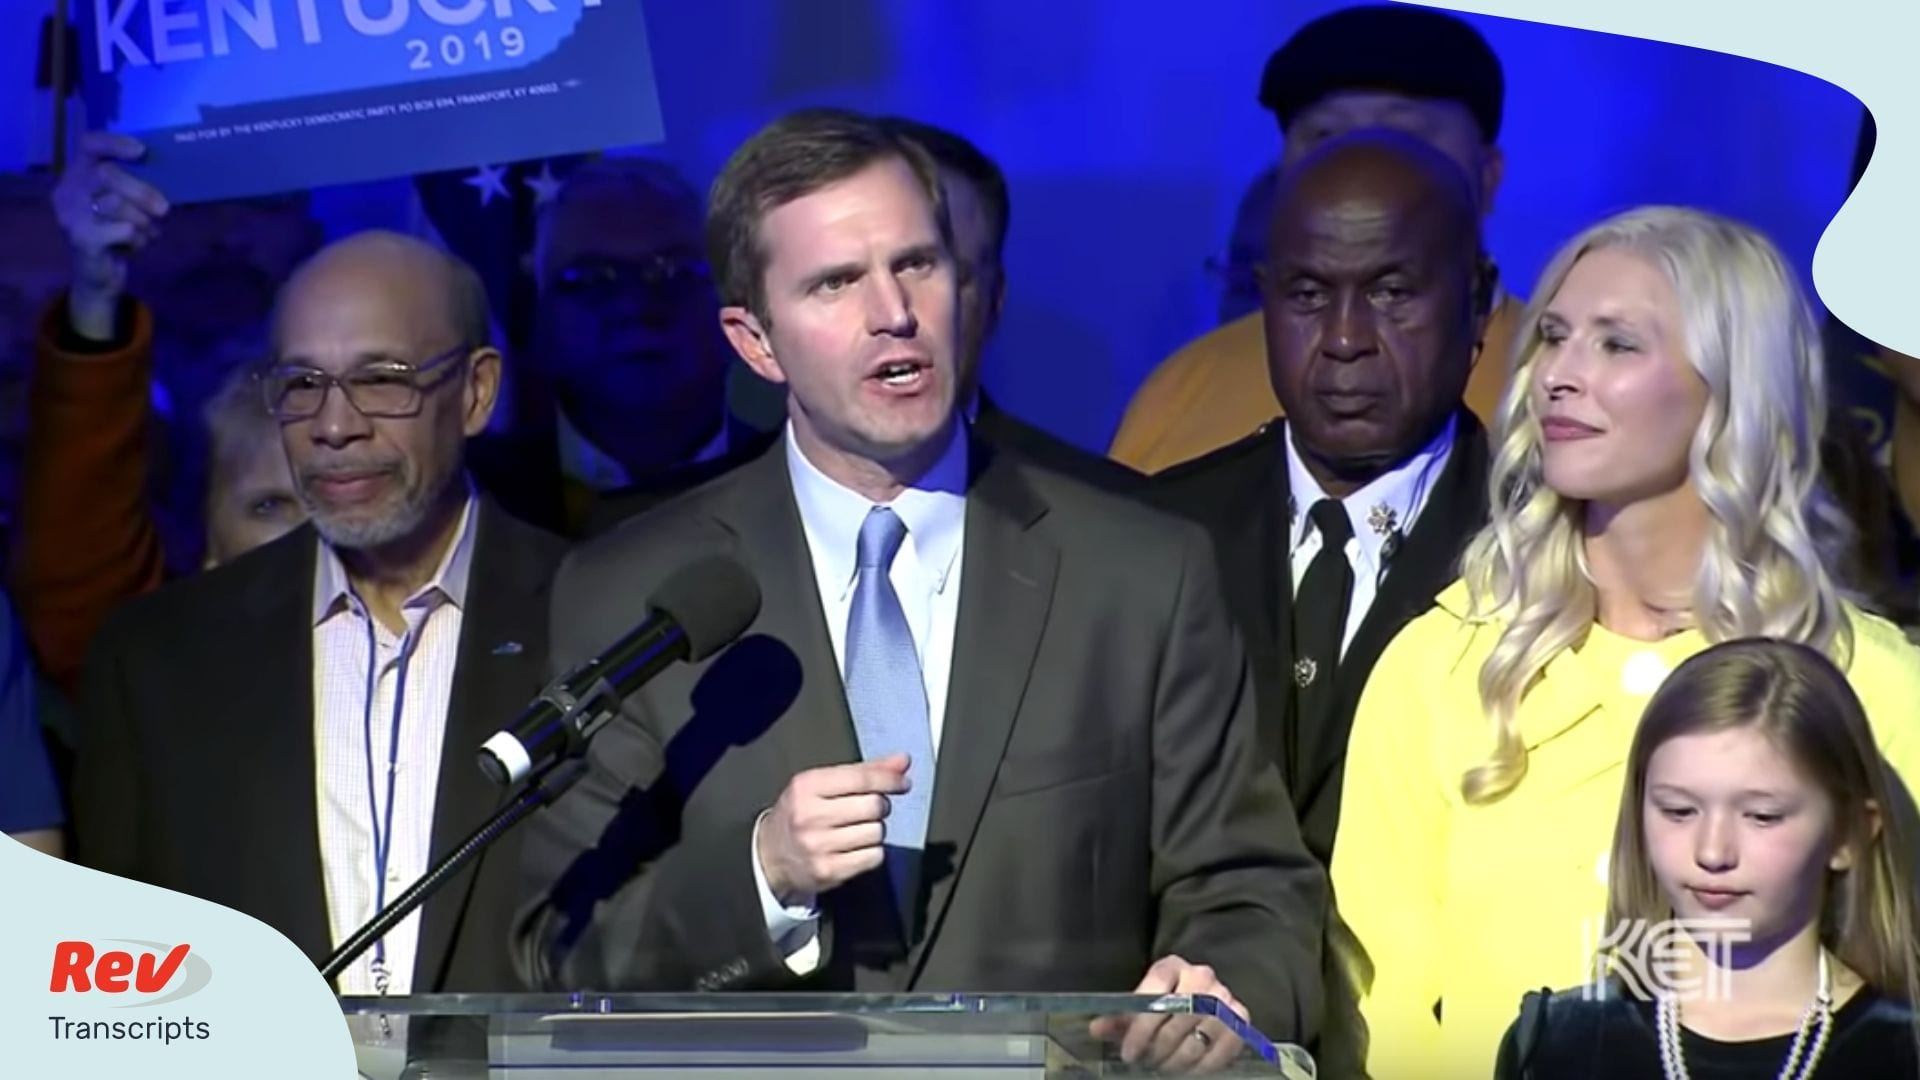 Andy Beshear Acceptance Speech Transctipt Kentucky Governor